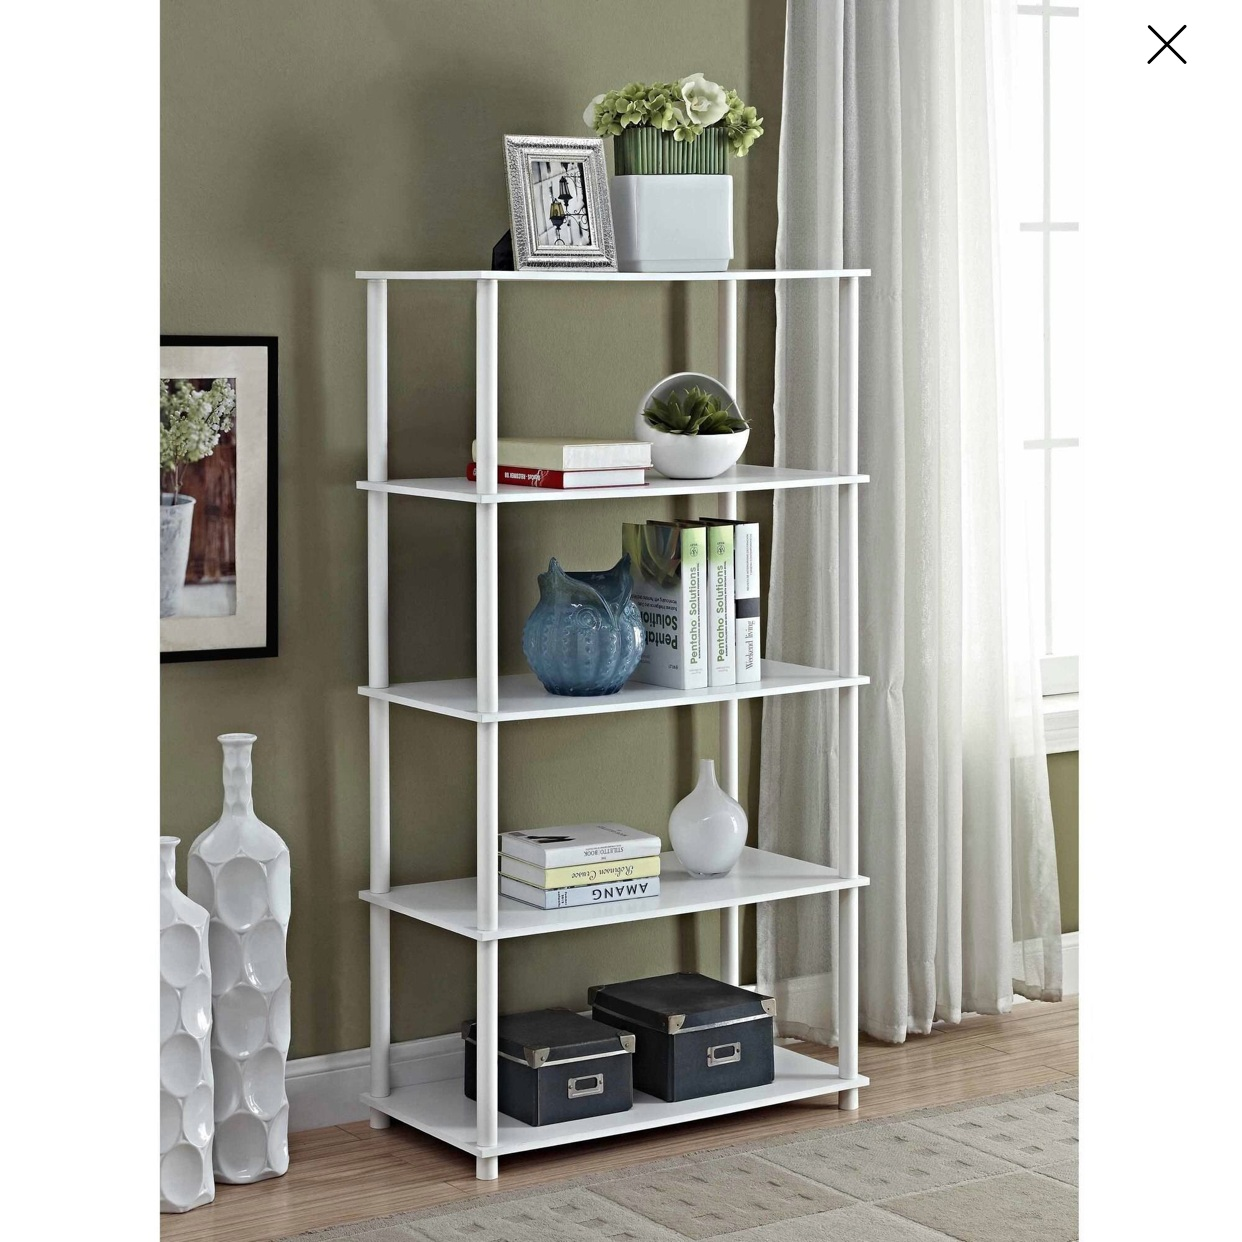 - These are our new shelving units for the studio! They will double as storage shelves and display shelves as they are Instagram friendly. YAY!Super sturdy and a great height.Find them here.